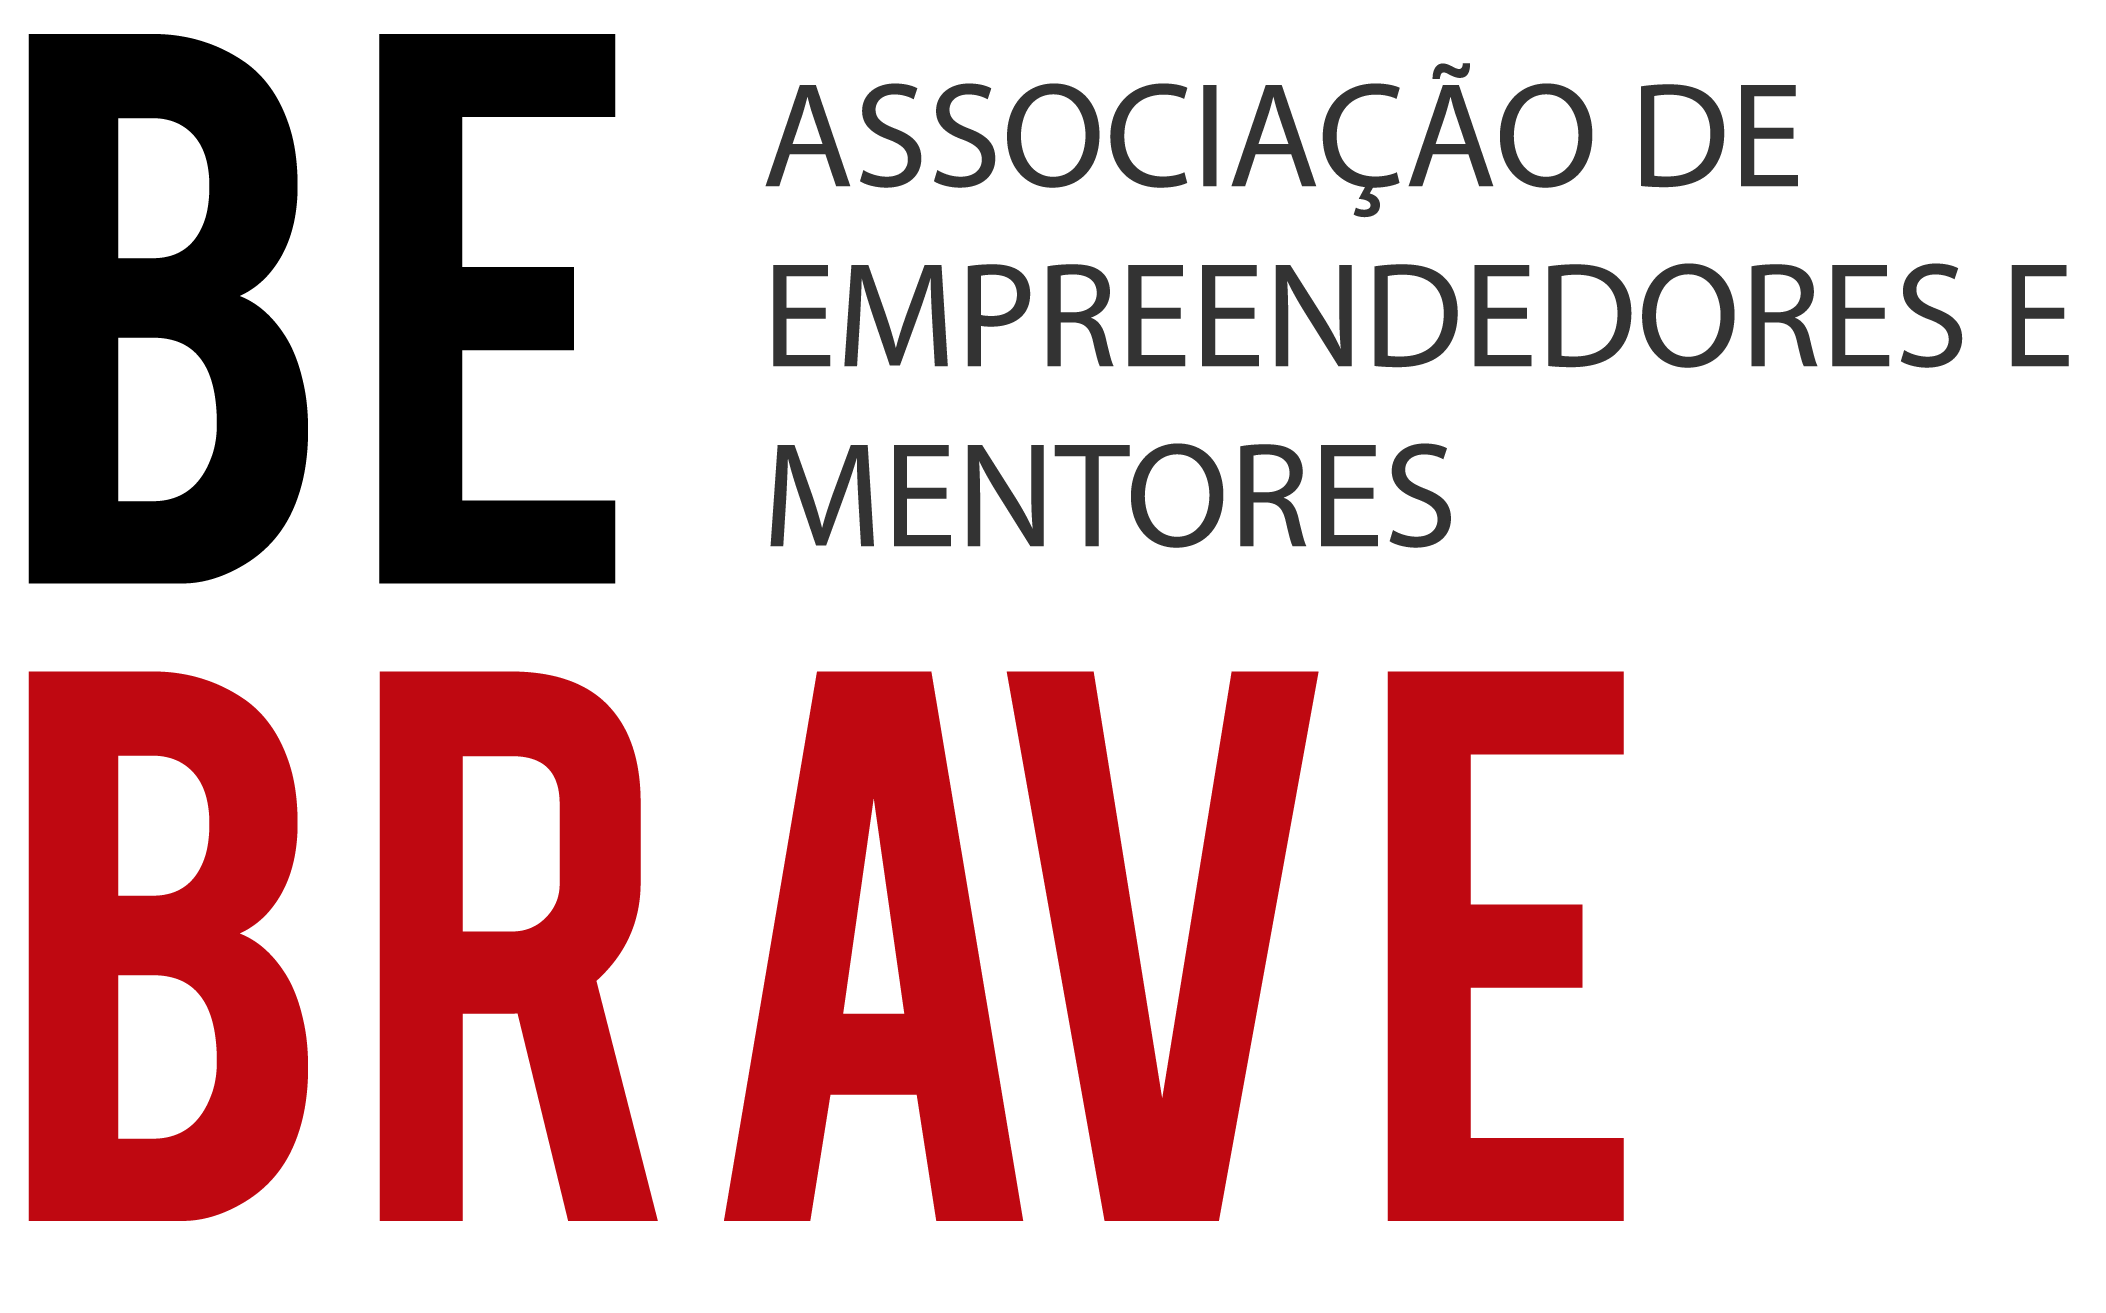 BeBrave – Entrepreneurship and Mentoring Association